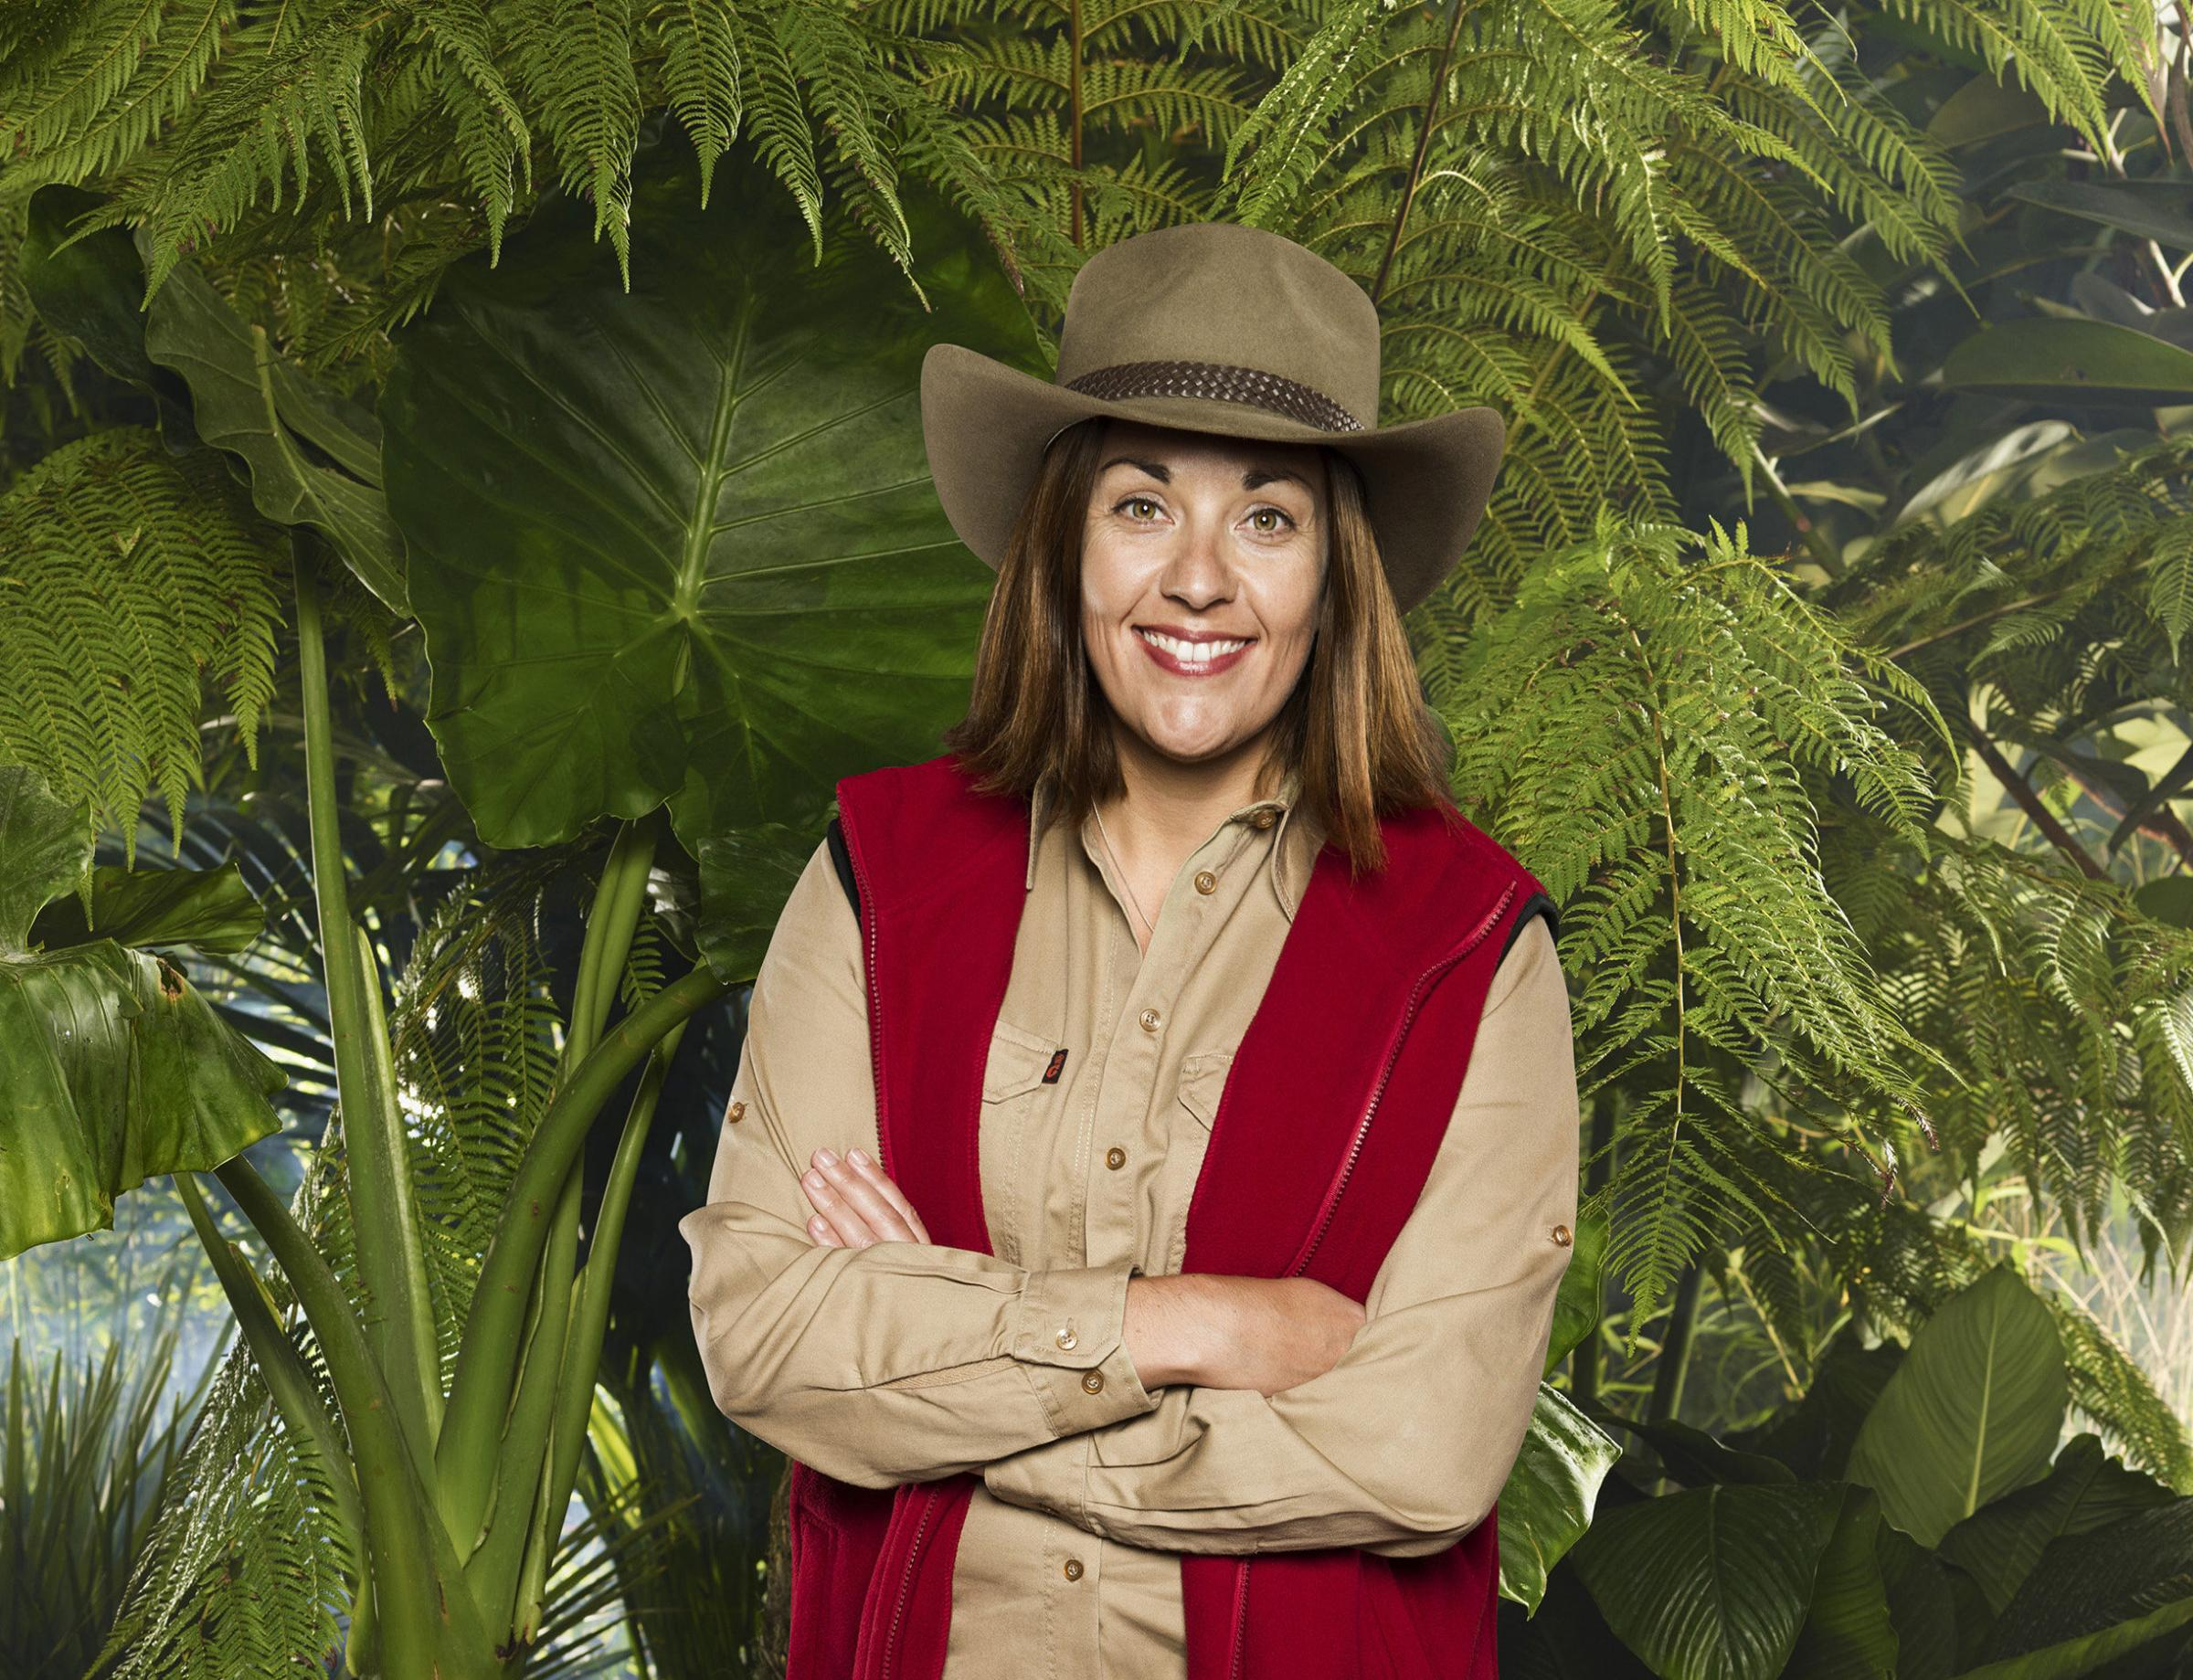 Scott Tumilty: Three tips for Kezia Dugdale to survive on I'm A Celebrity (inspired by Metal Gear Solid)